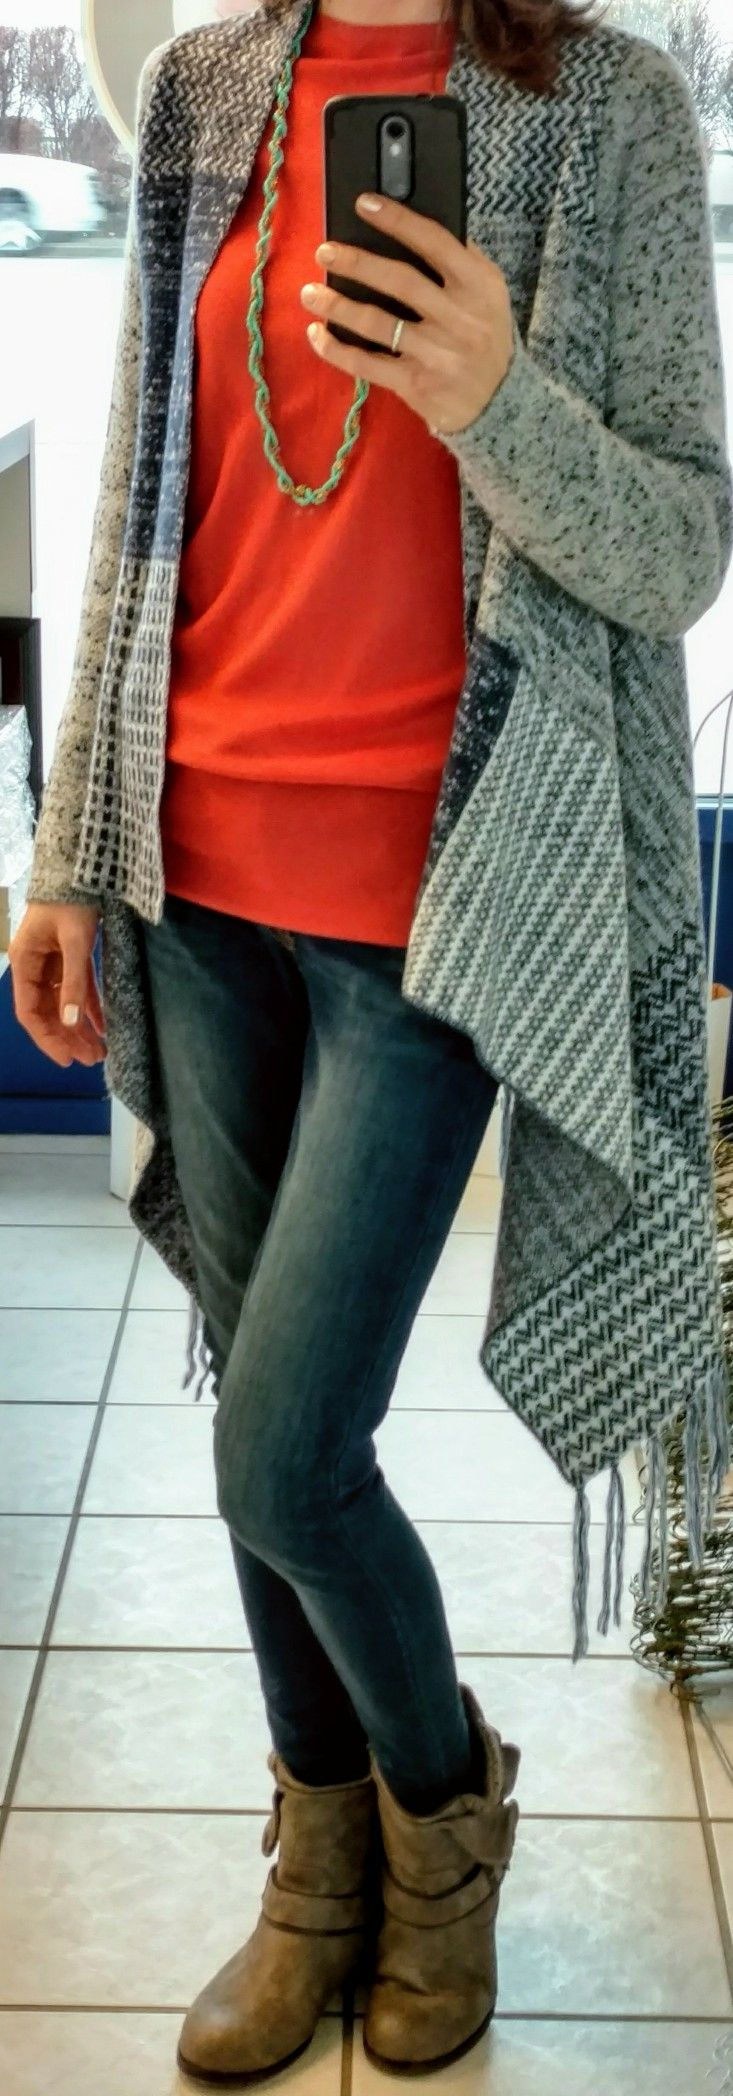 Ann Taylor shirt, Knox Rose waterfall cardigan, Levi's 535 Skinny jeans, SO boots